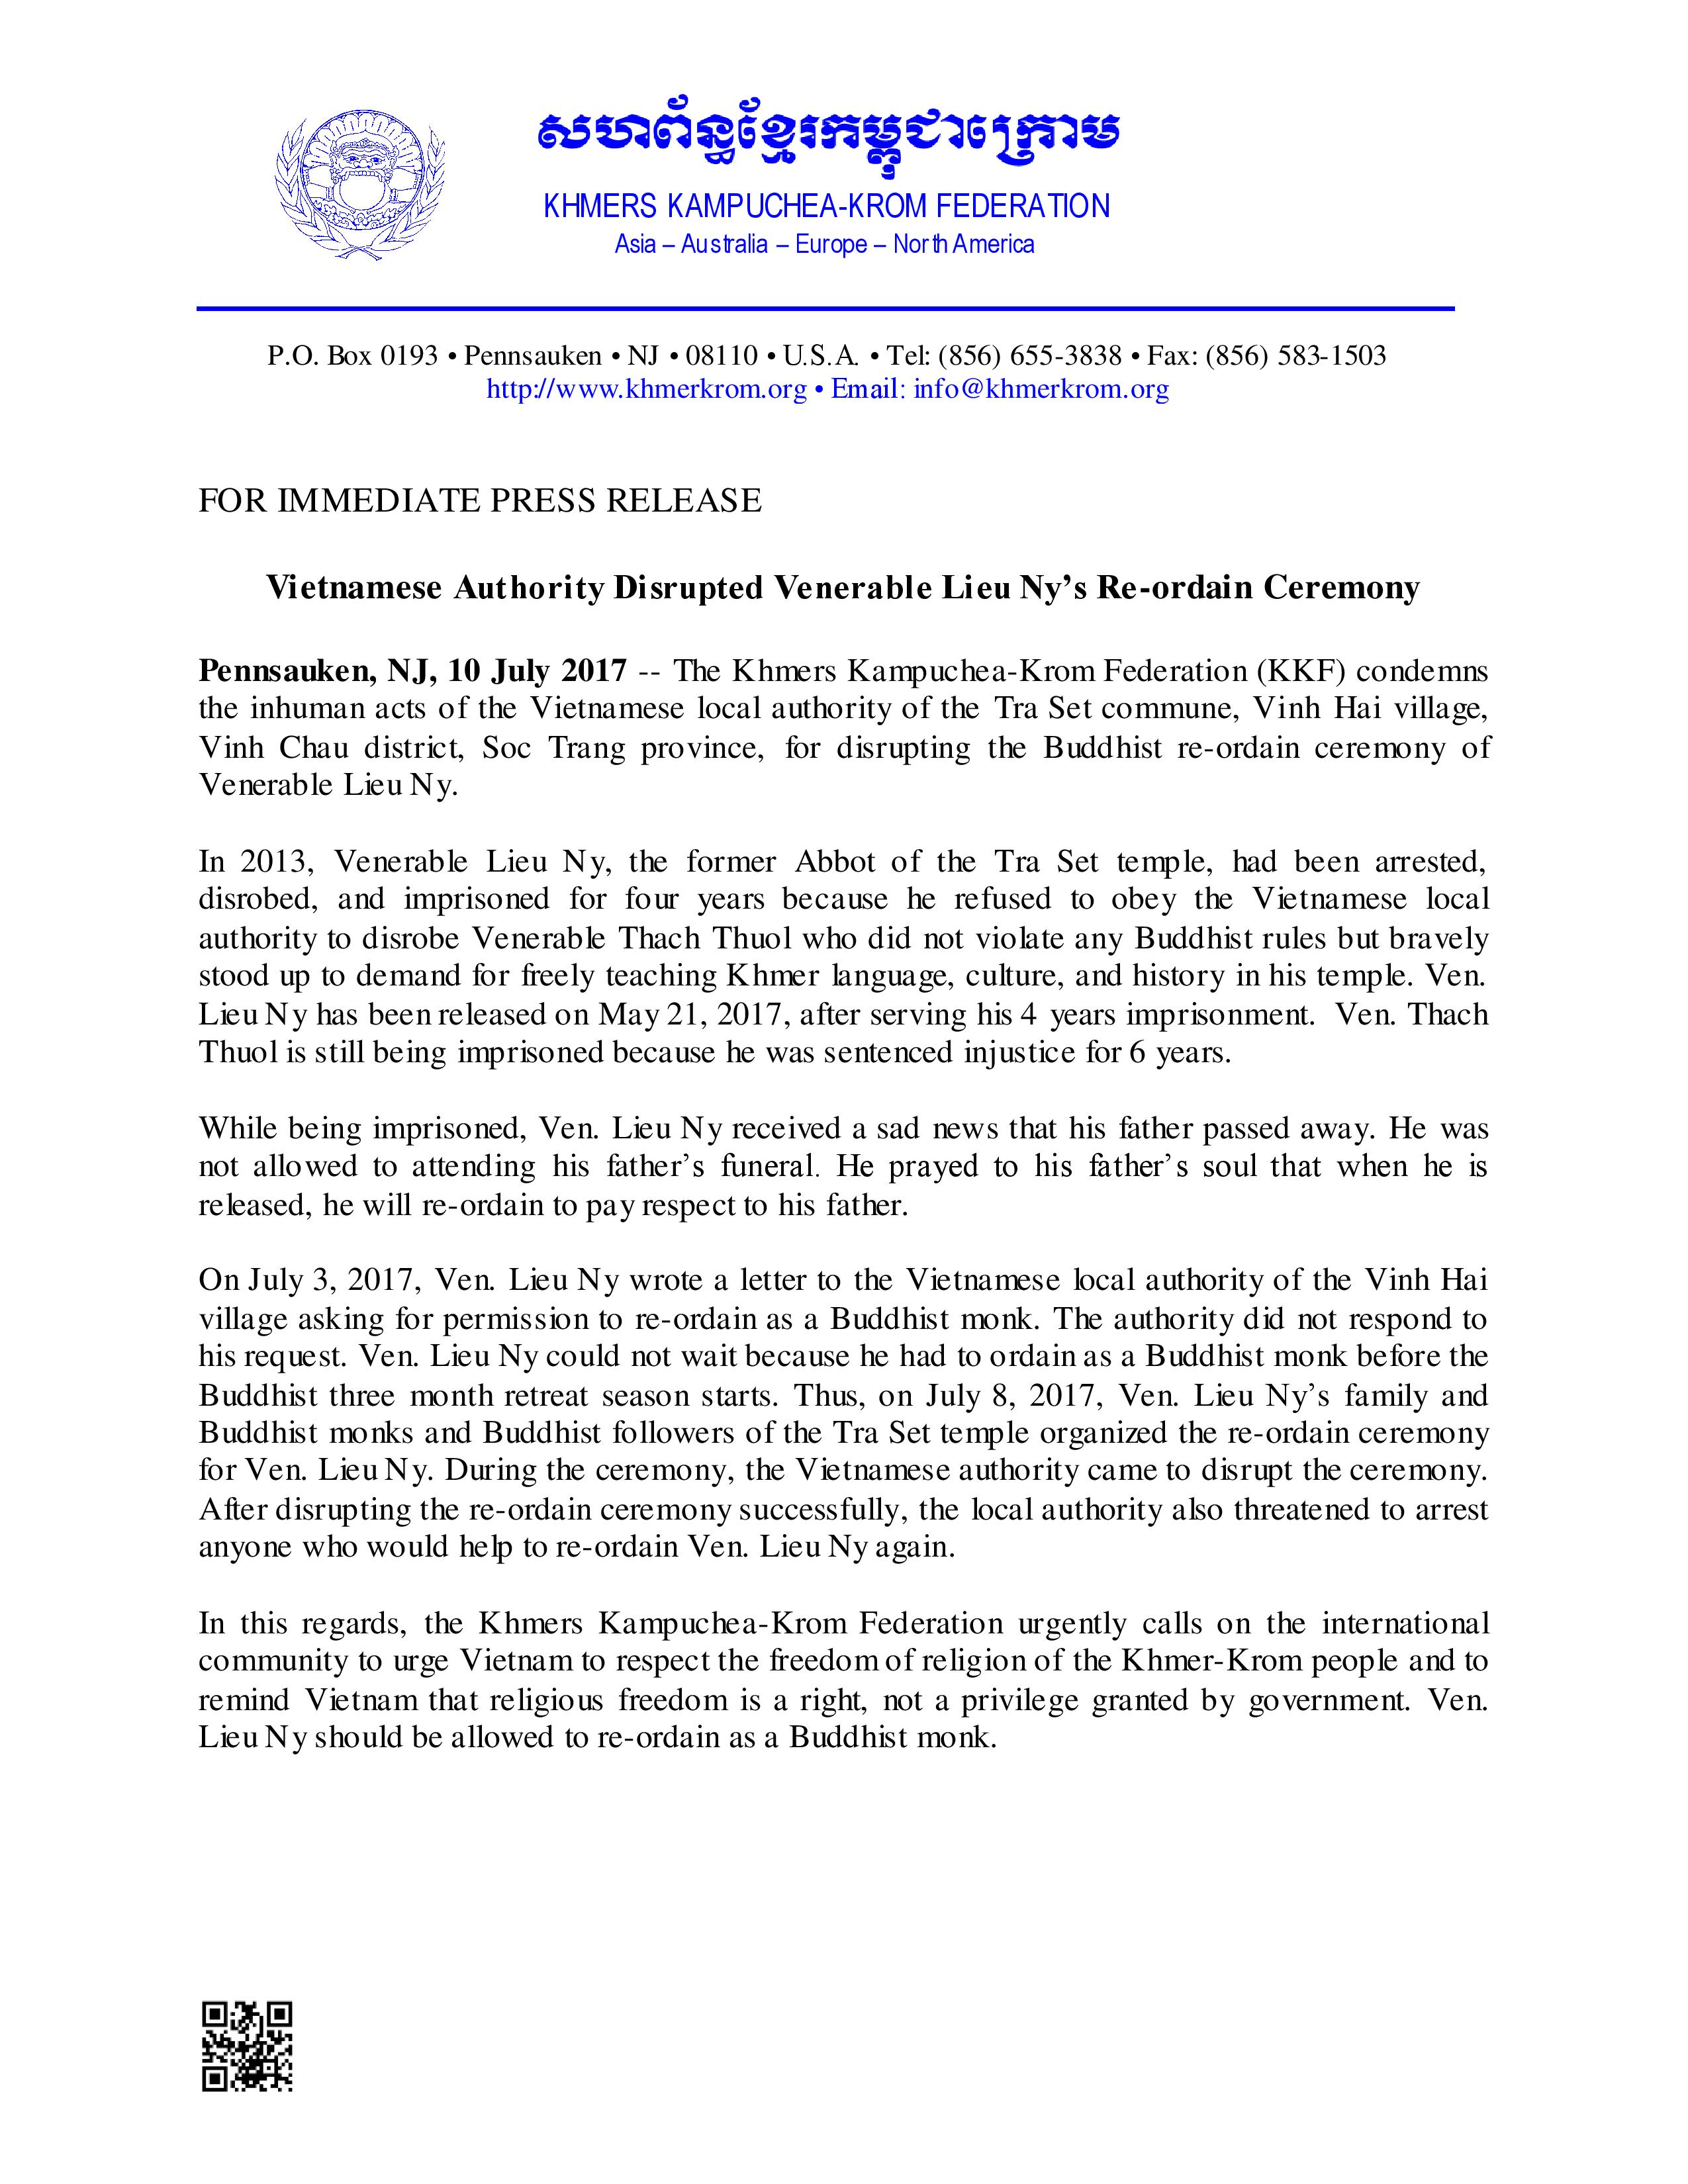 KKF Press Release Ven Lieu Ny Reordain Denied by Government